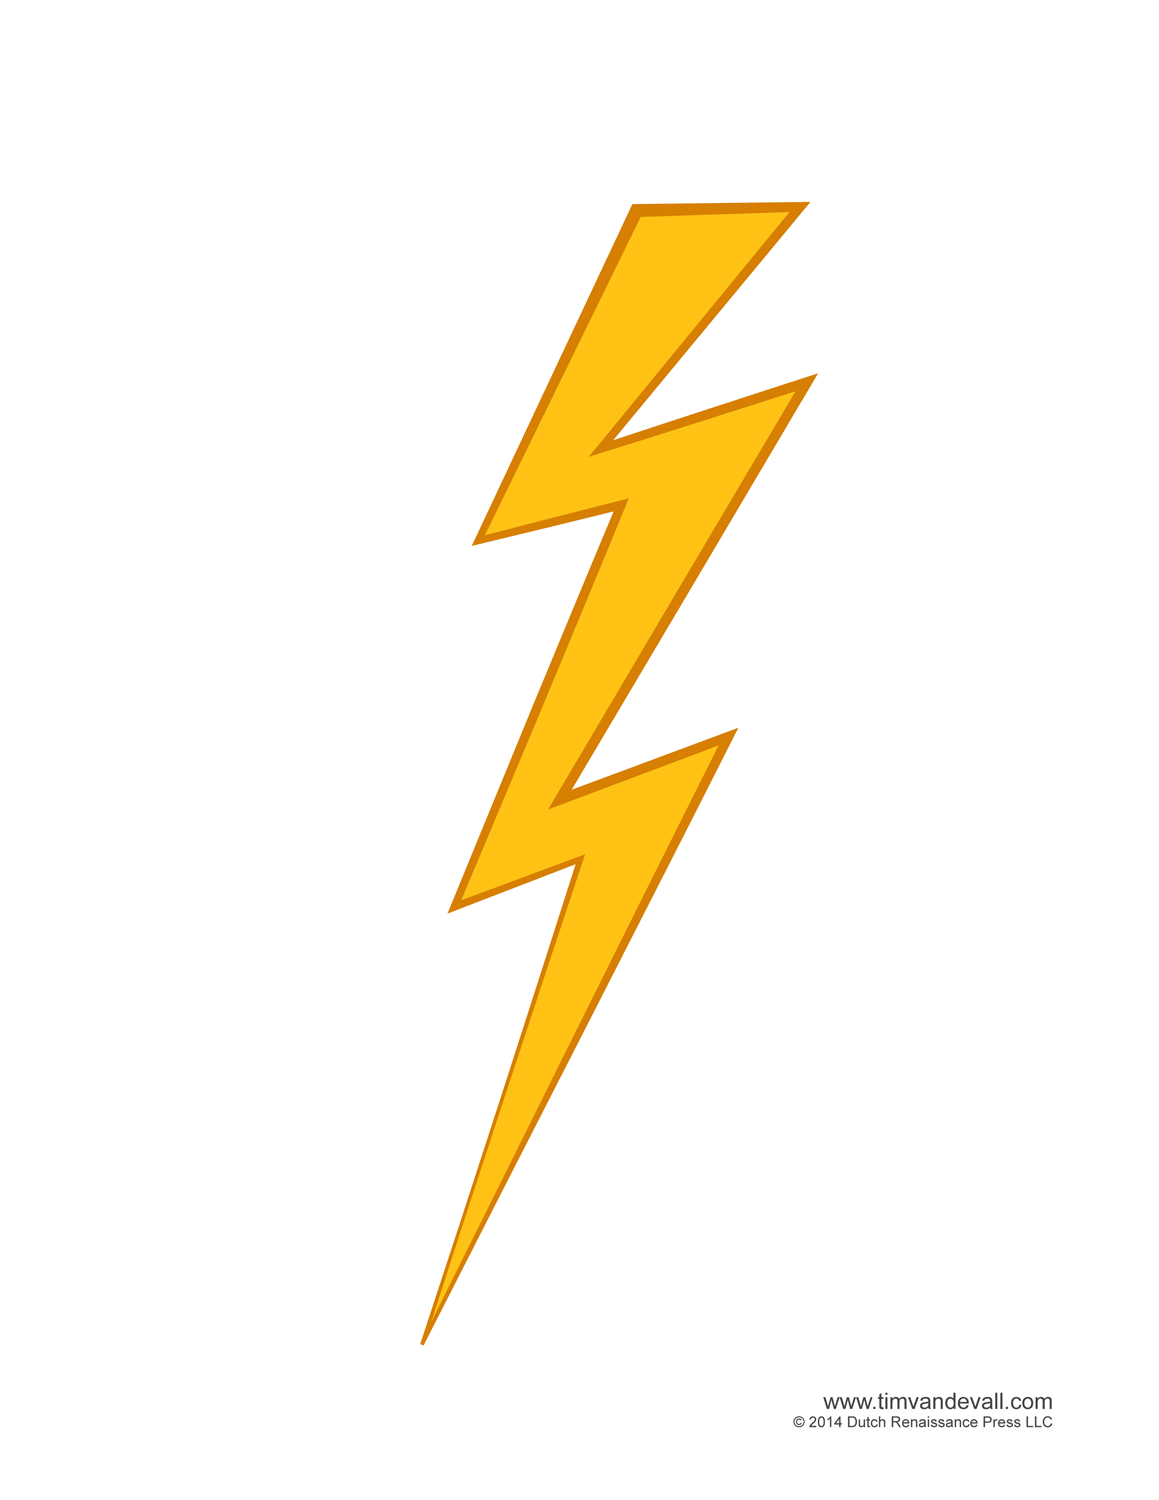 image free Download for free png. Bolt clipart zeus